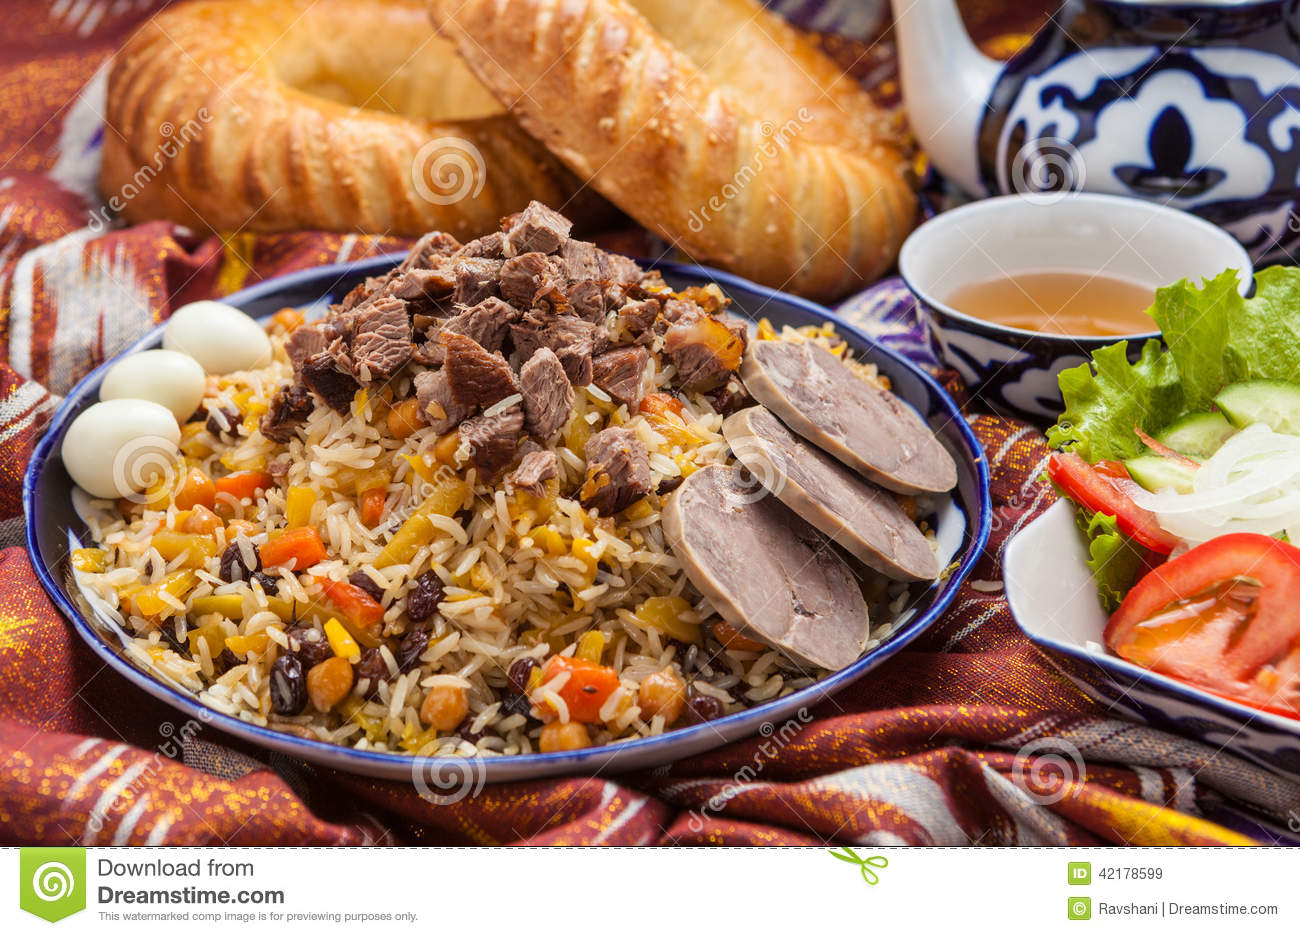 uzbek national food pilaf on traditional fabric adras stock image  uzbek national food pilaf on traditional fabric adras